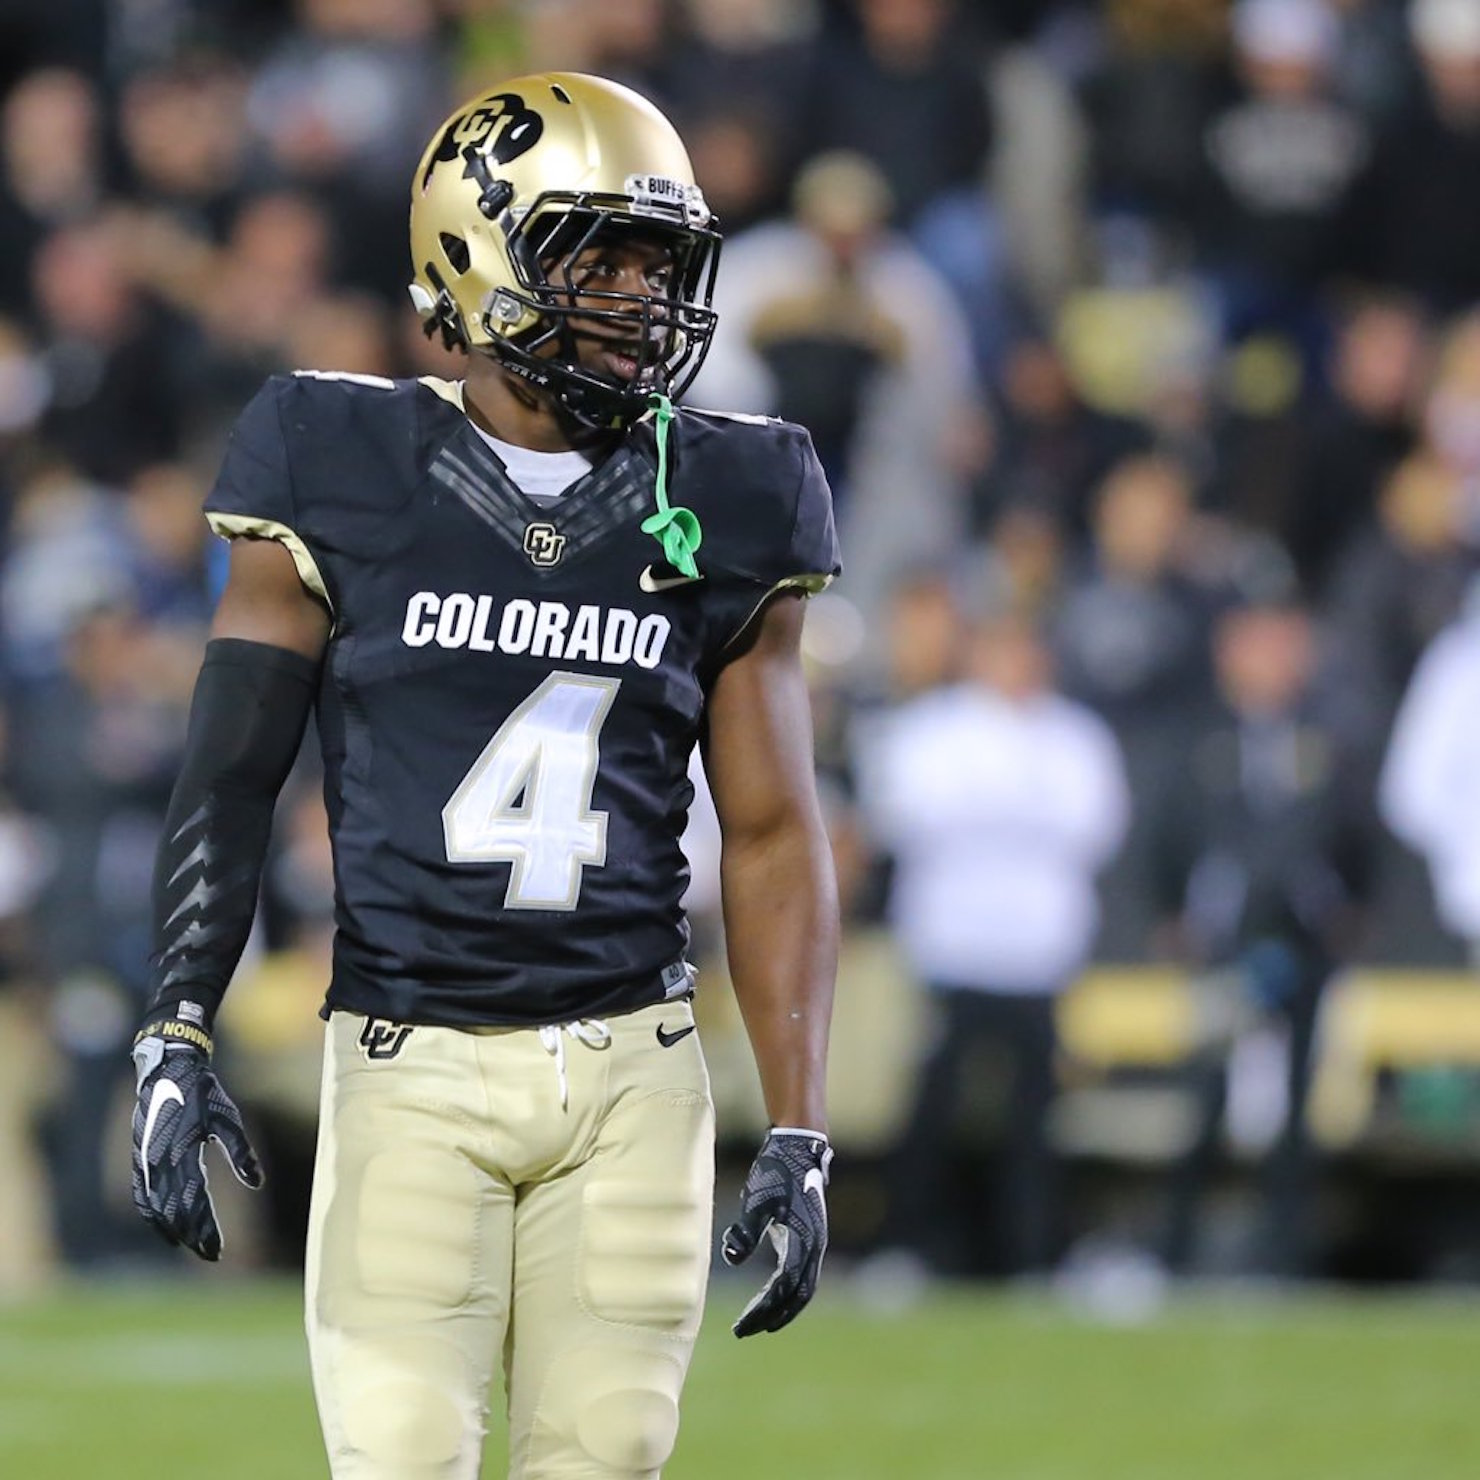 Colorado Mesa Football Shooting: NFL Draft Round 2, Pick 60: Dallas Cowboys Select Chidobe